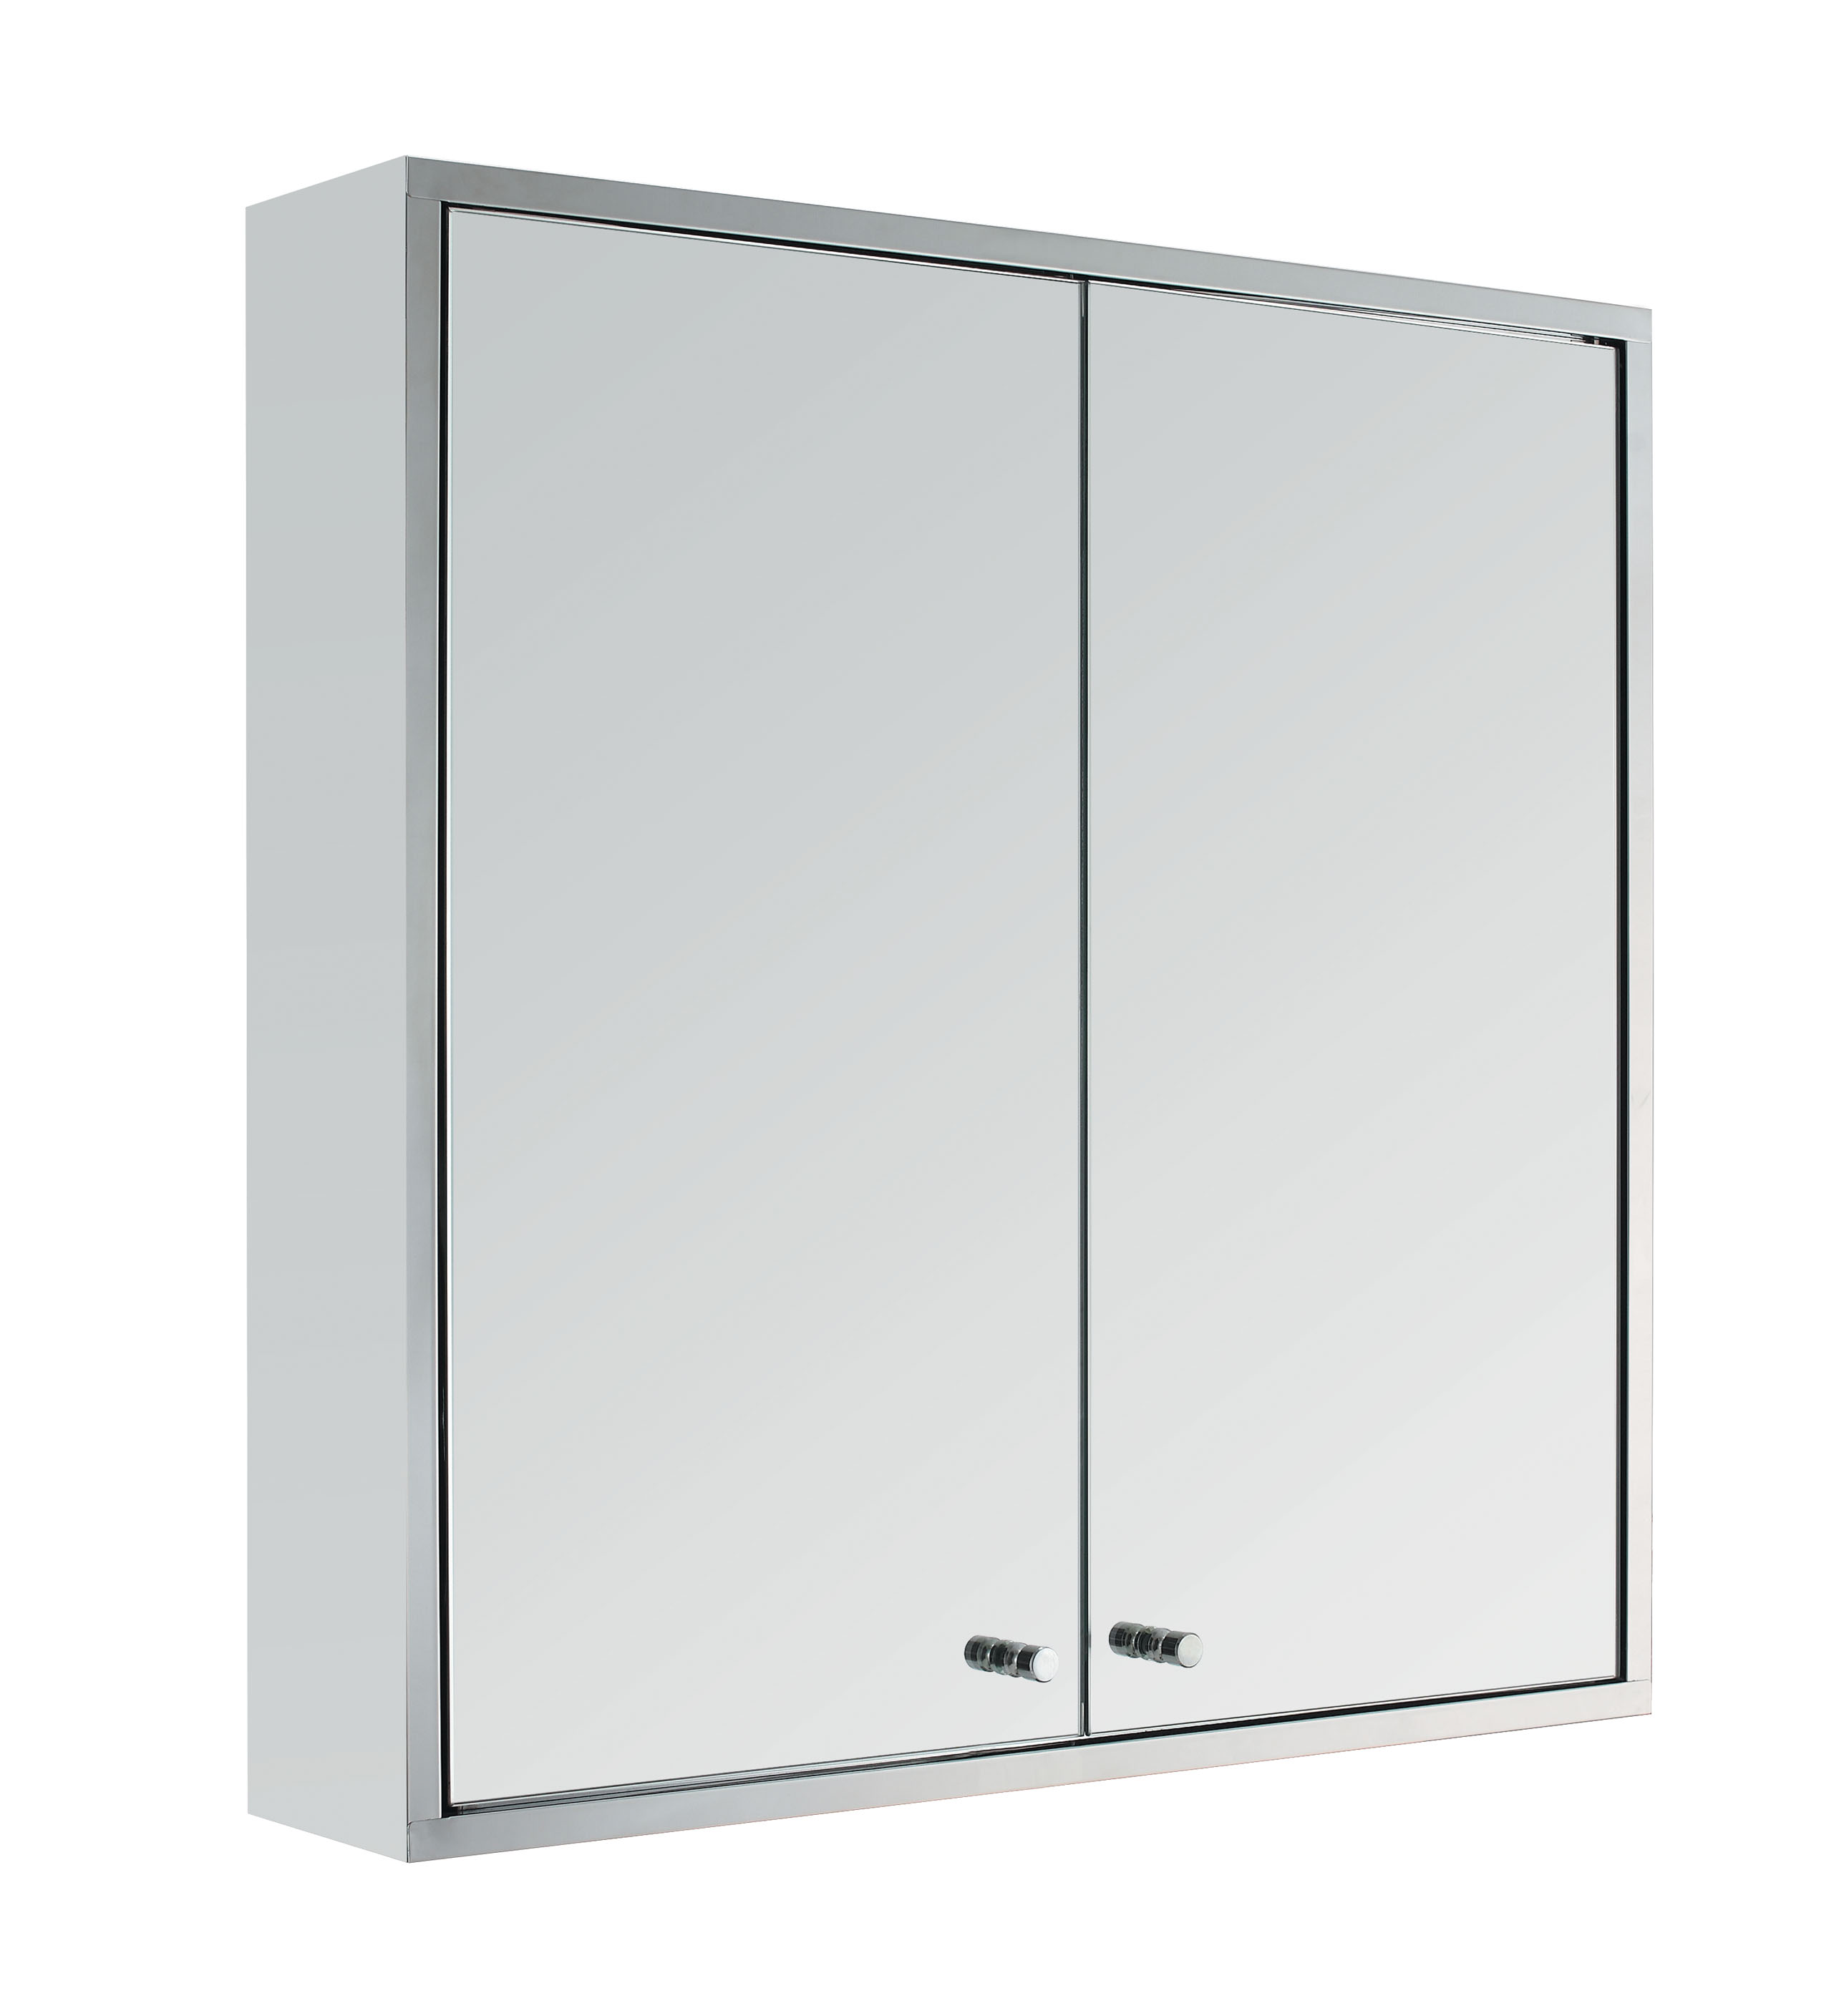 Mirrored Bathroom Cupboard Stainless Steel Double Door Wall Mount Bathroom Cabinet